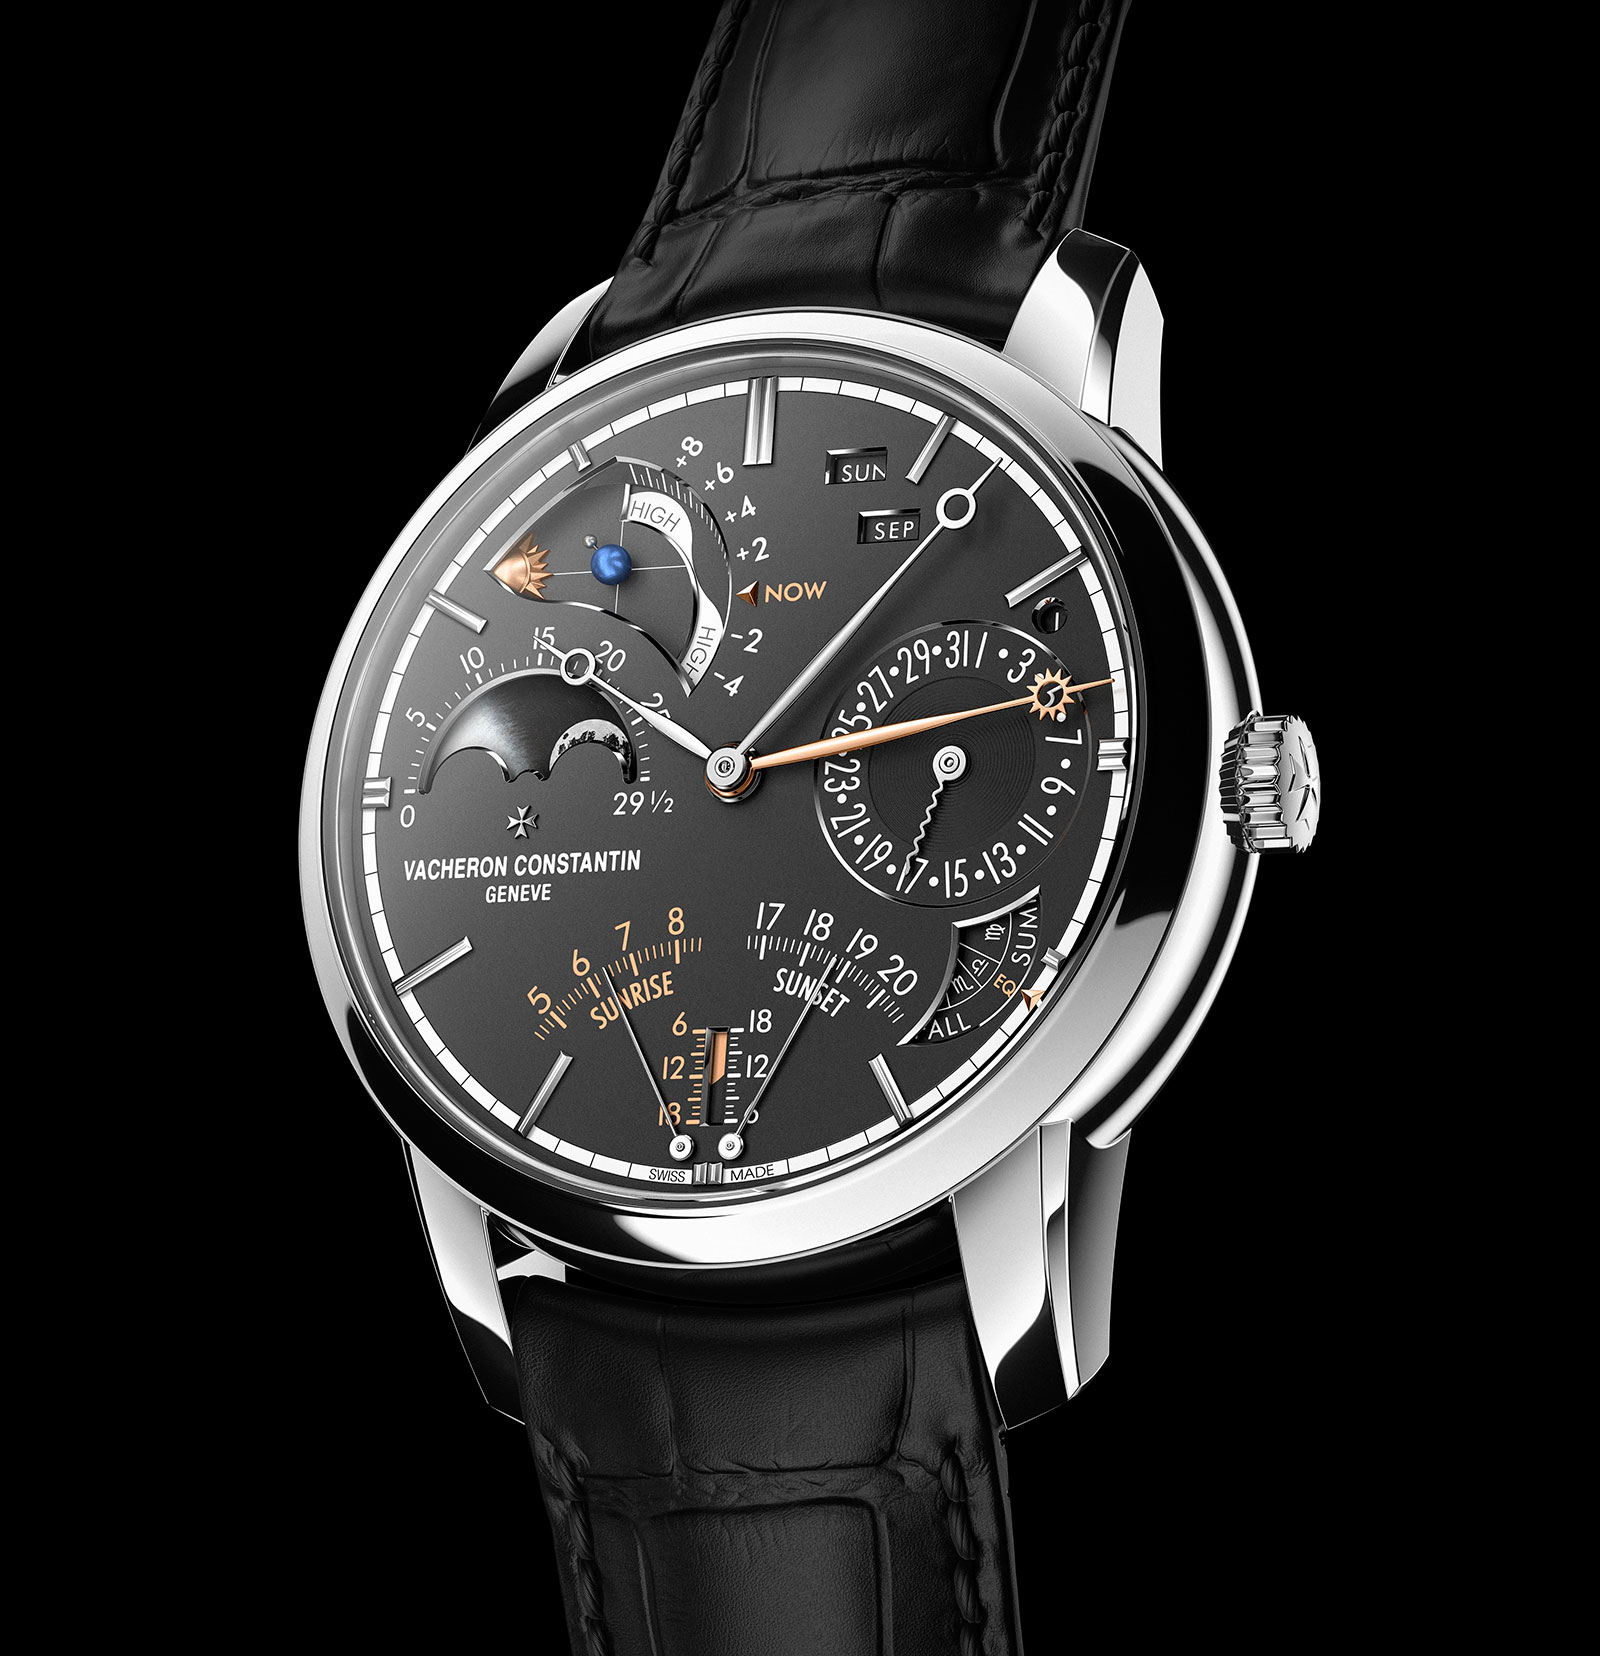 Vacheron-Constantin-Celestia-Astronomical-Grand-Complication-3600-2.jpg